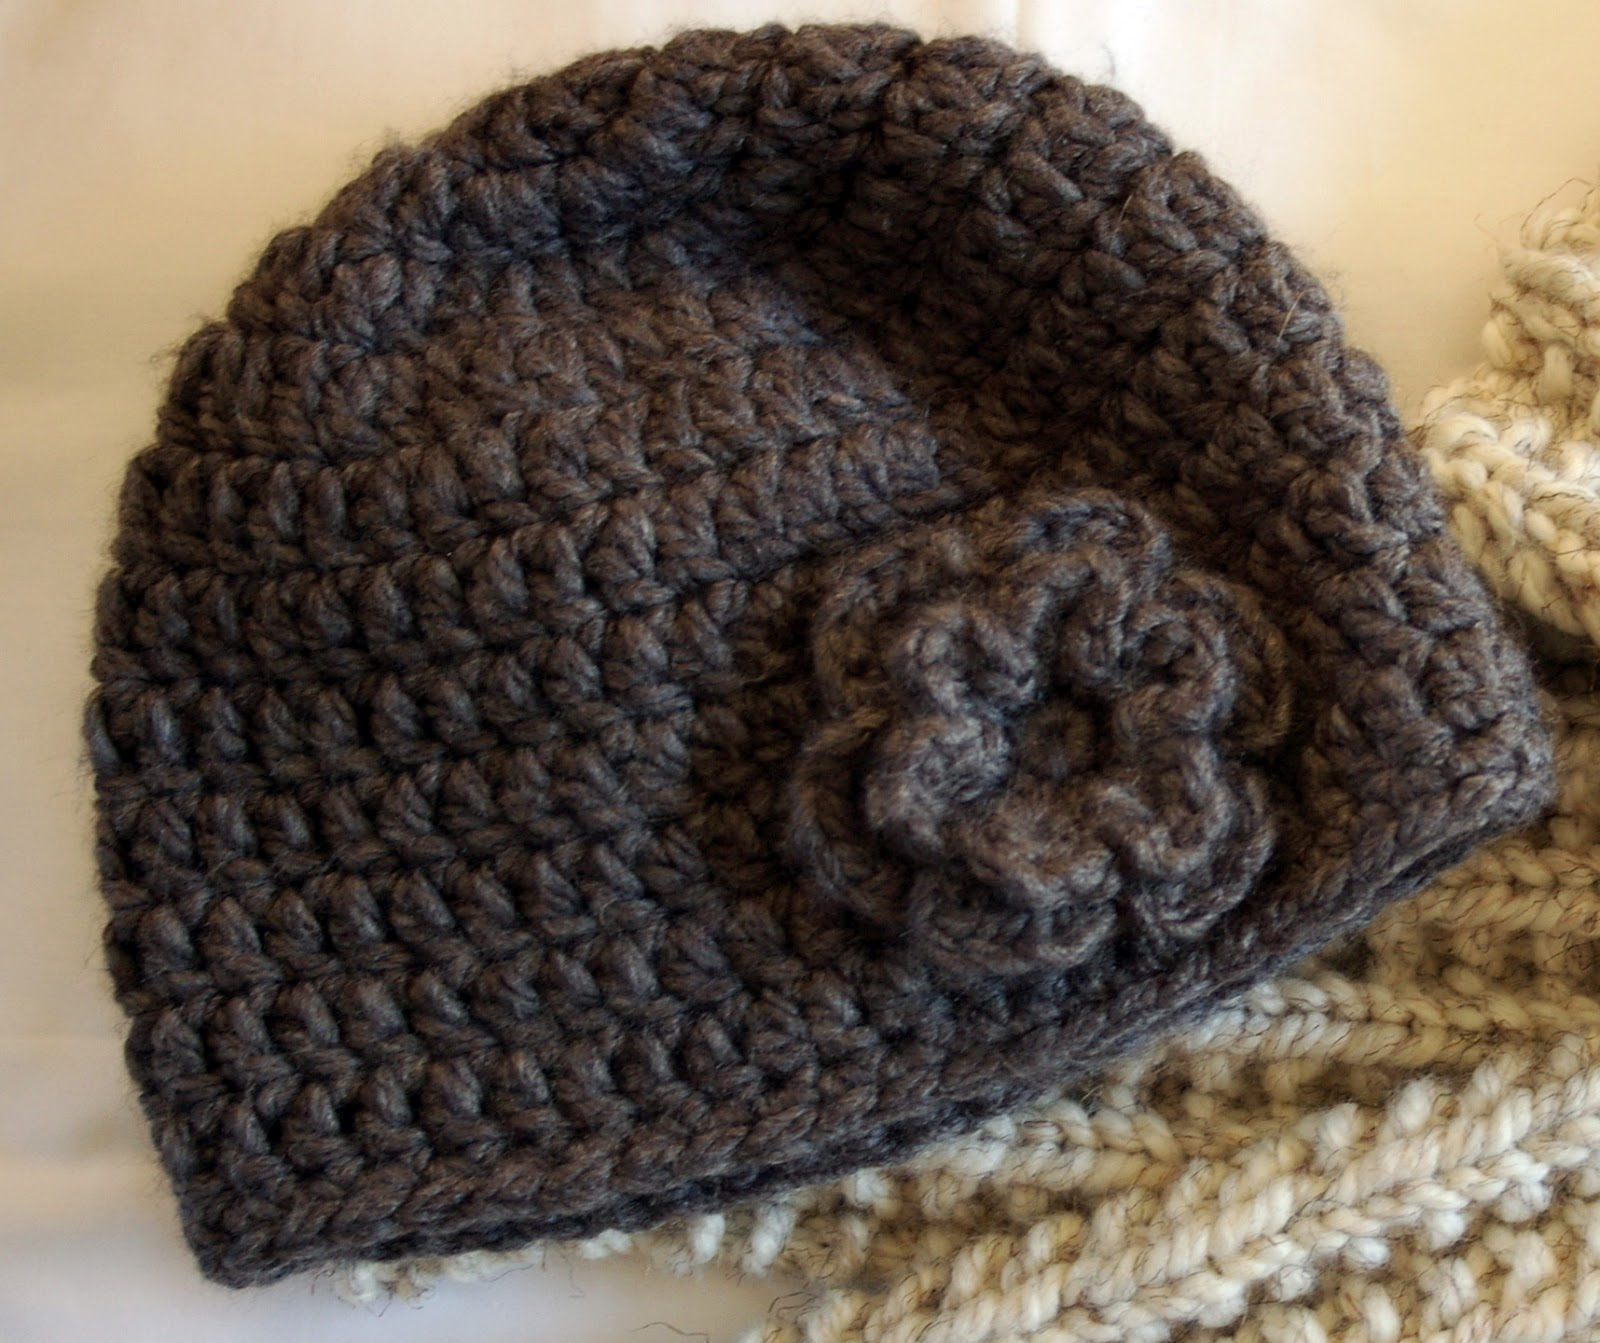 Easy Crochet Flower Patterns For Hats : Crocheting the Day Away: ::Tutorials and Free Patterns::